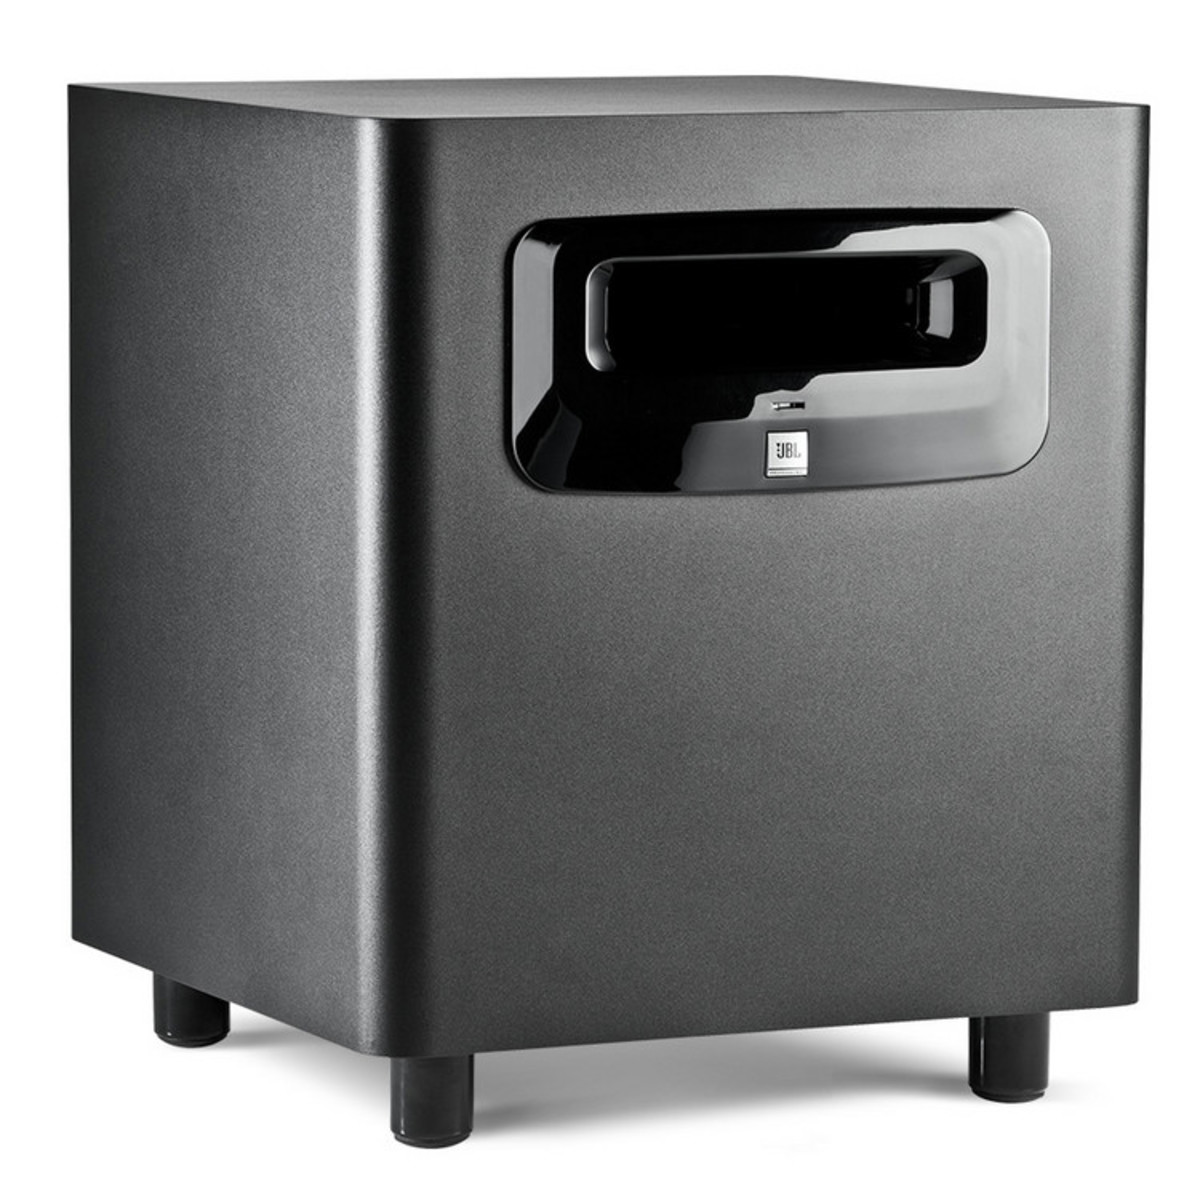 Click to view product details and reviews for Jbl Lsr310s 10 Inch Powered Studio Subwoofer B Stock.